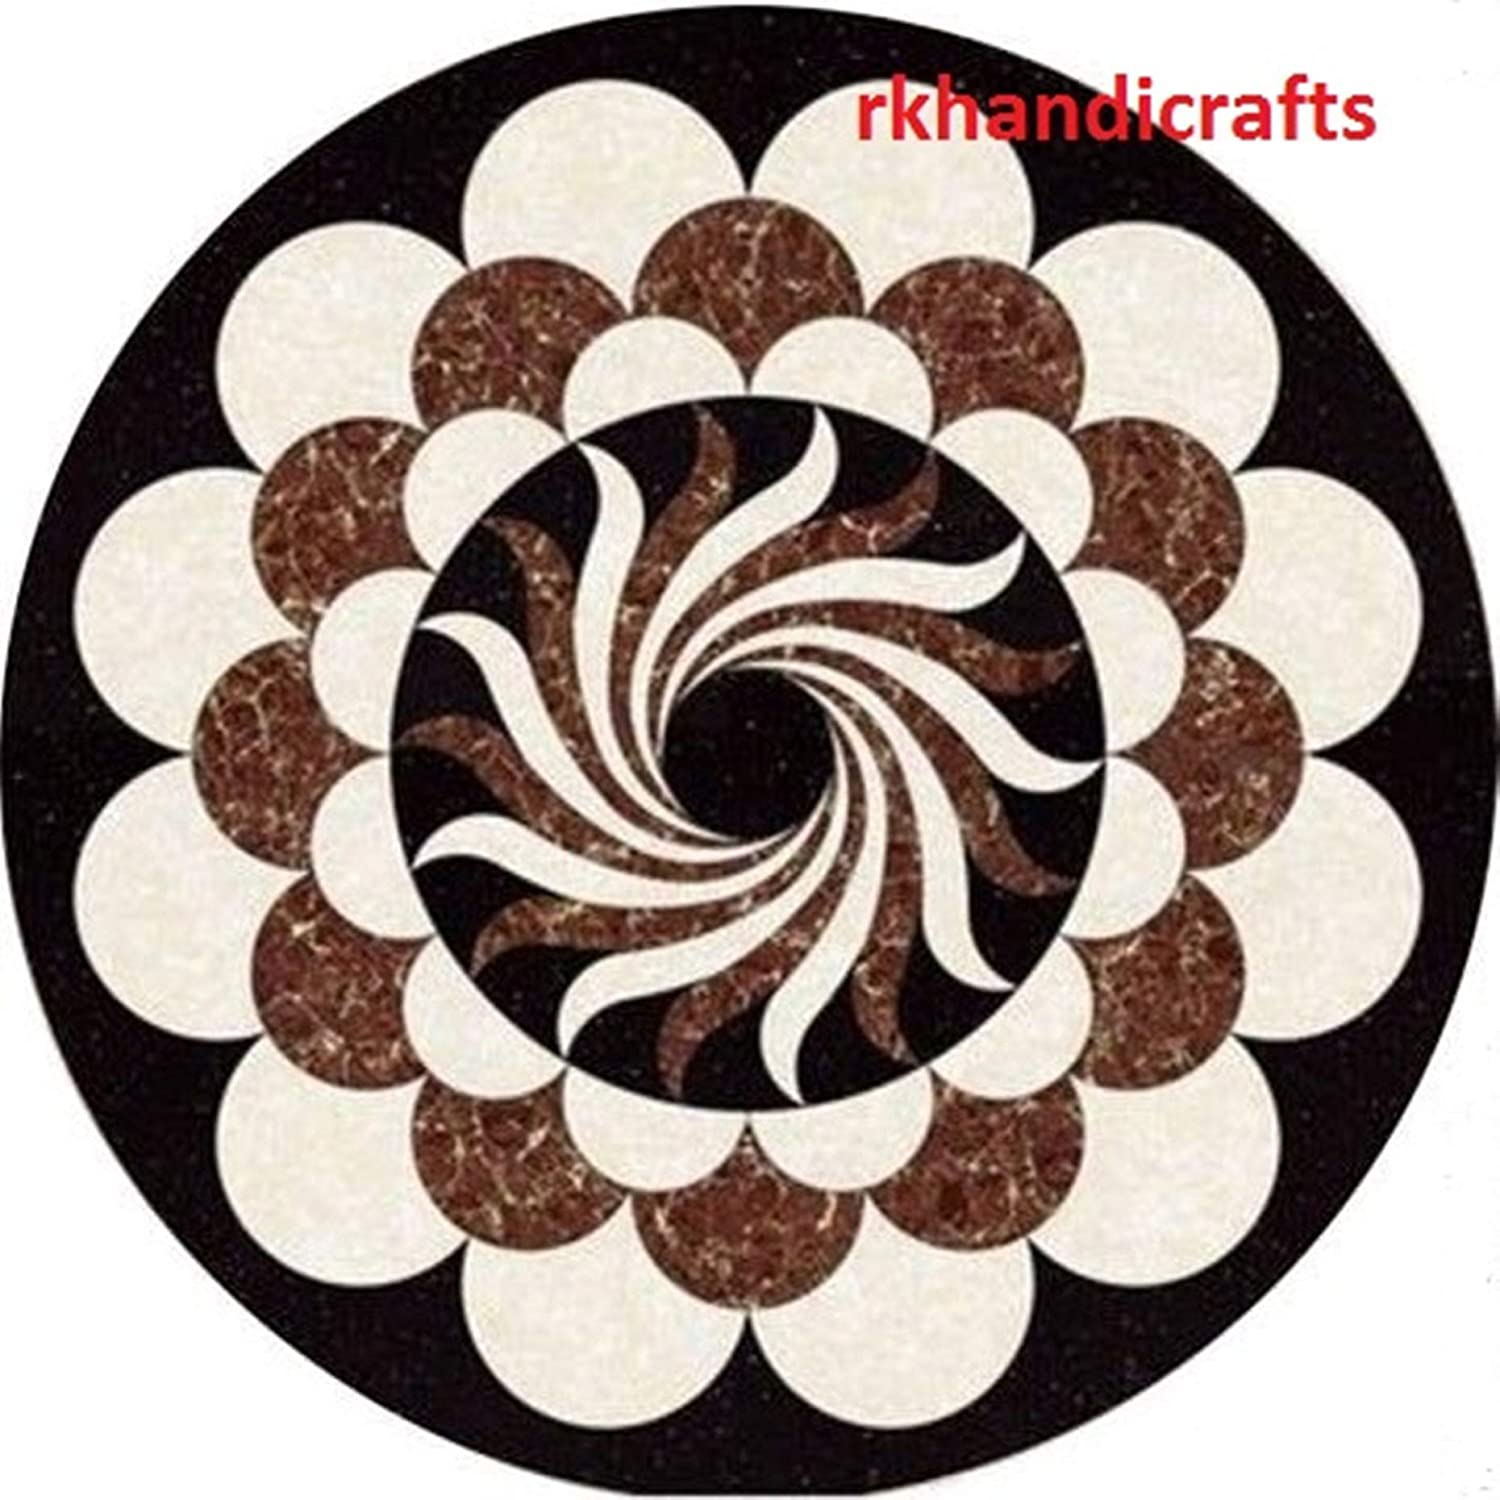 18 Inches Black Marble Patio Coffee Table Top Pietra Dura Art with Floral Design Handmade from India 71ubvfz5wHLSL1500_